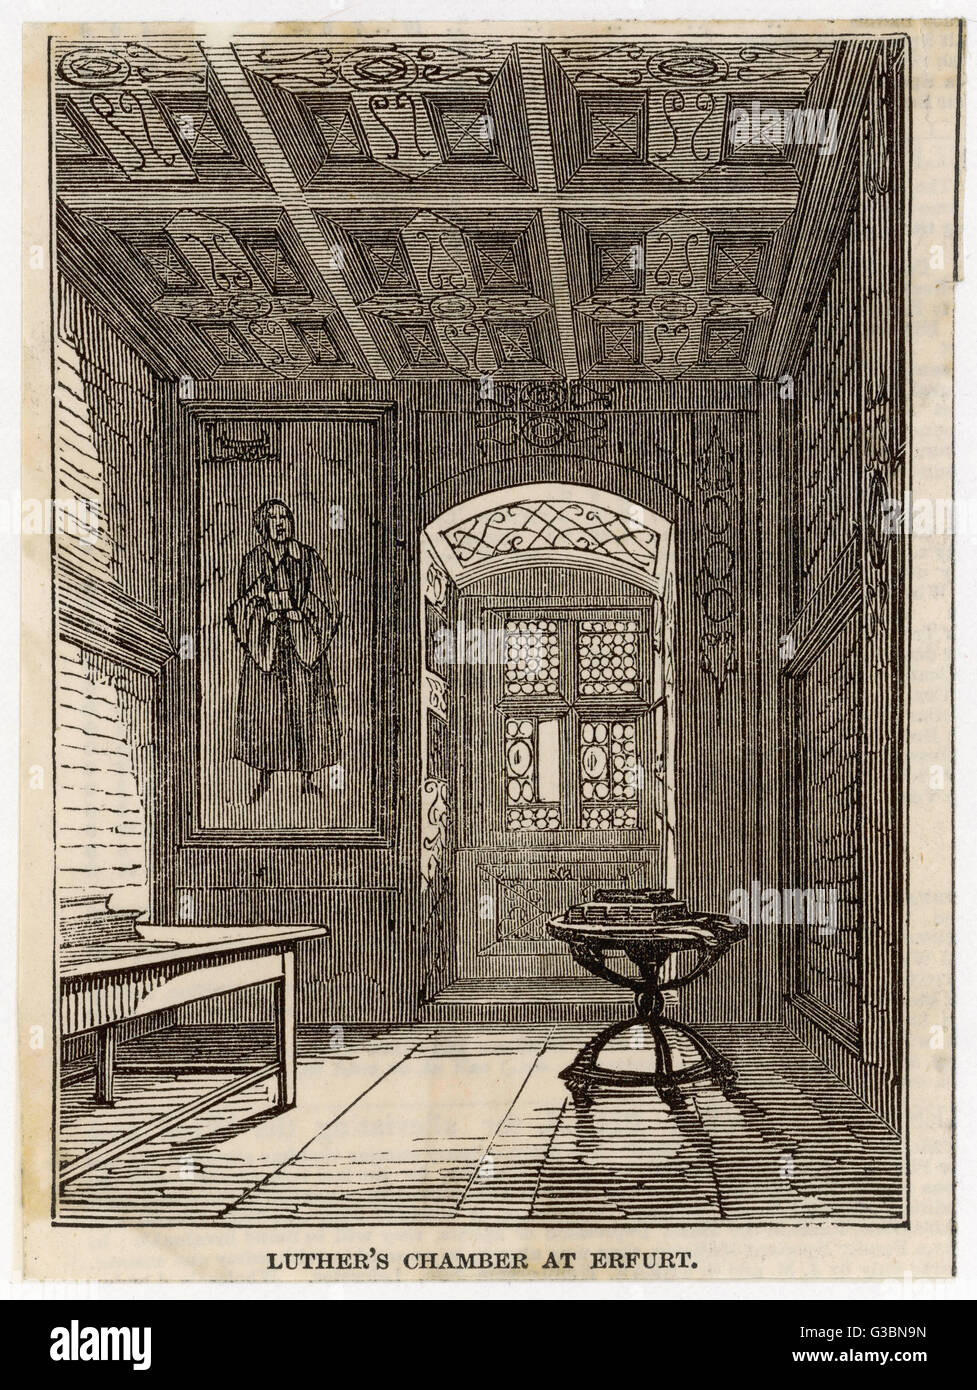 Luther's rooms at Erfurt.          Date: 1483 - 1546 - Stock Image